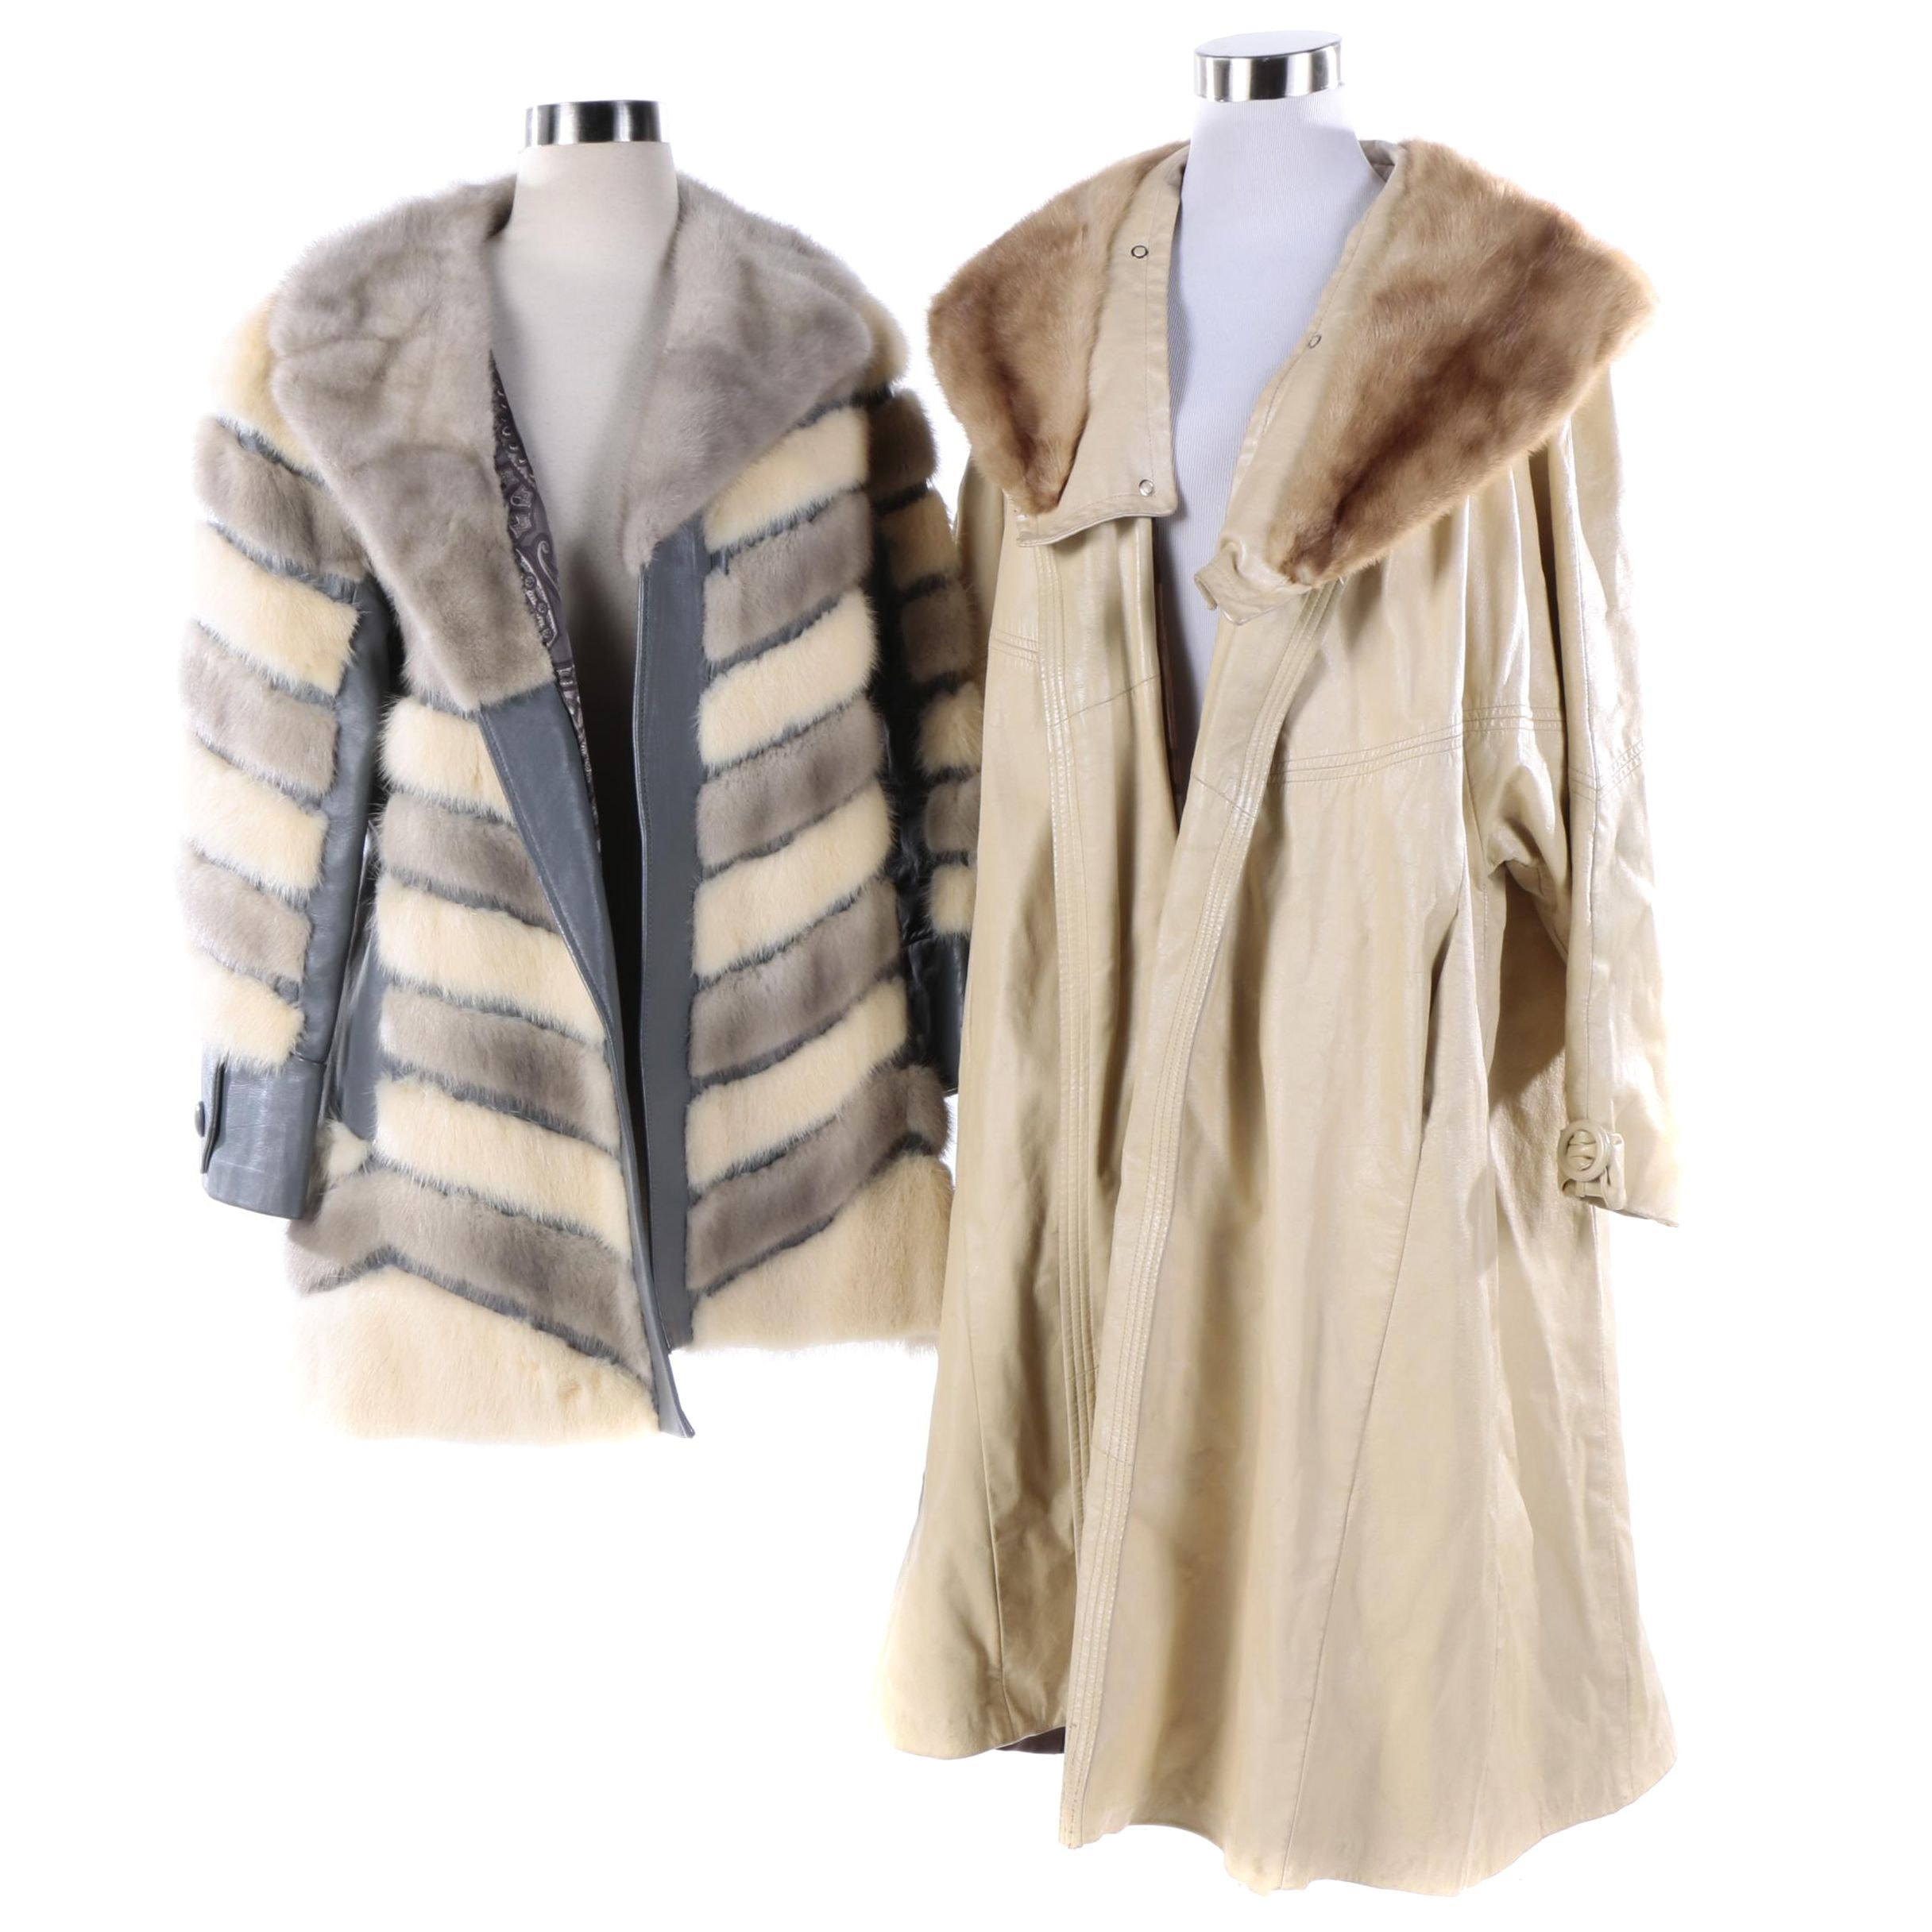 Circa 1970s Vintage Chevron Mink Fur and Beige Leather Coats